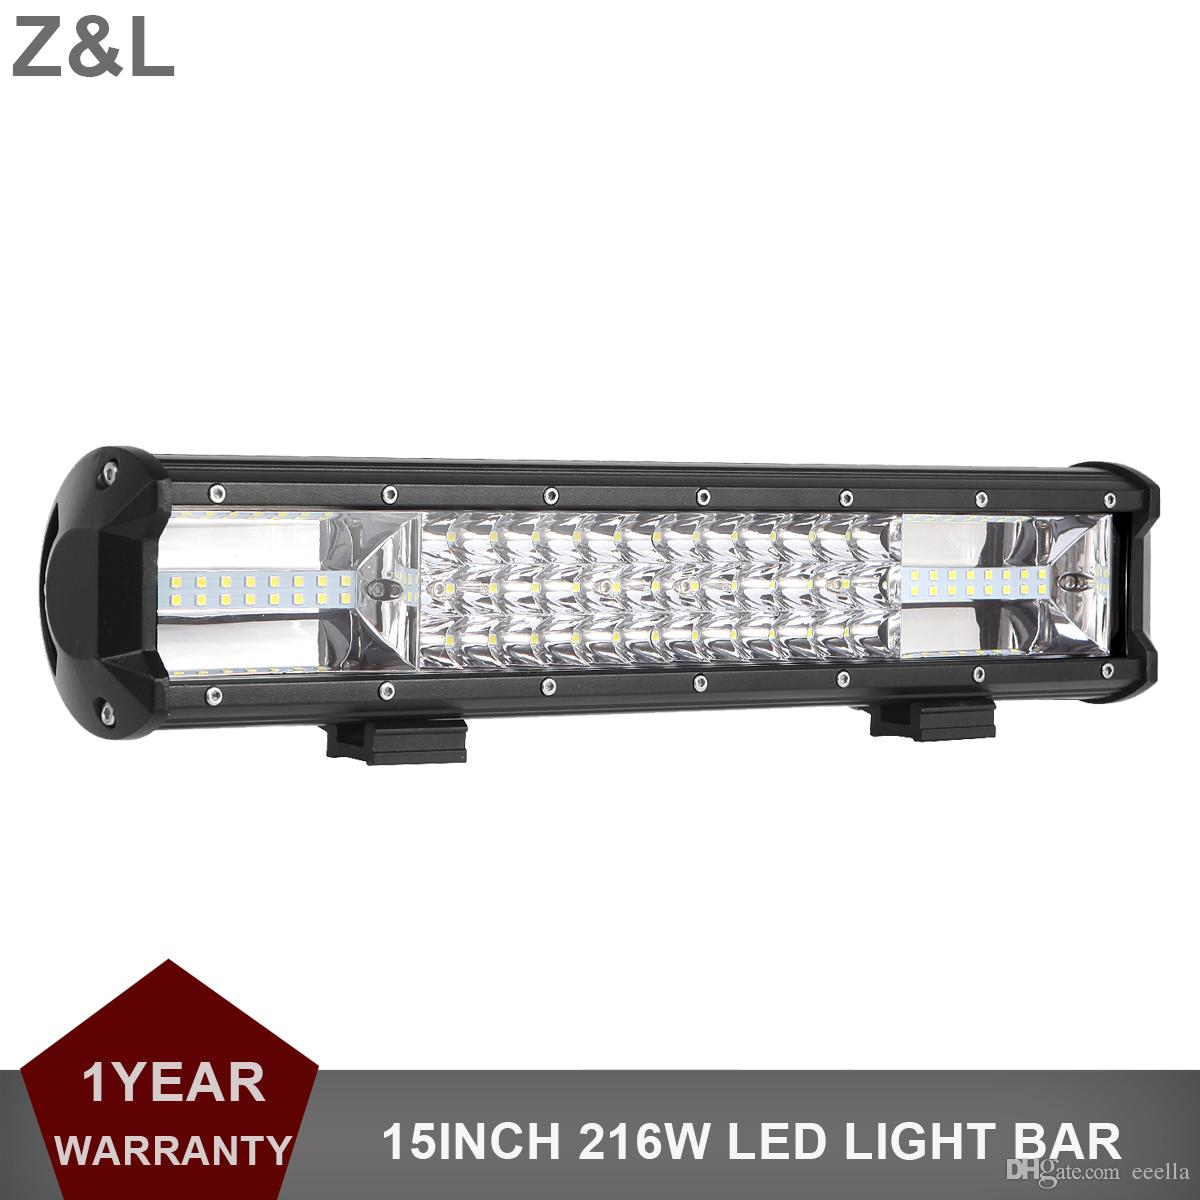 15 Inch Led Light Bar 216w Triple Row 12v 24v Offroad Driving Work ...